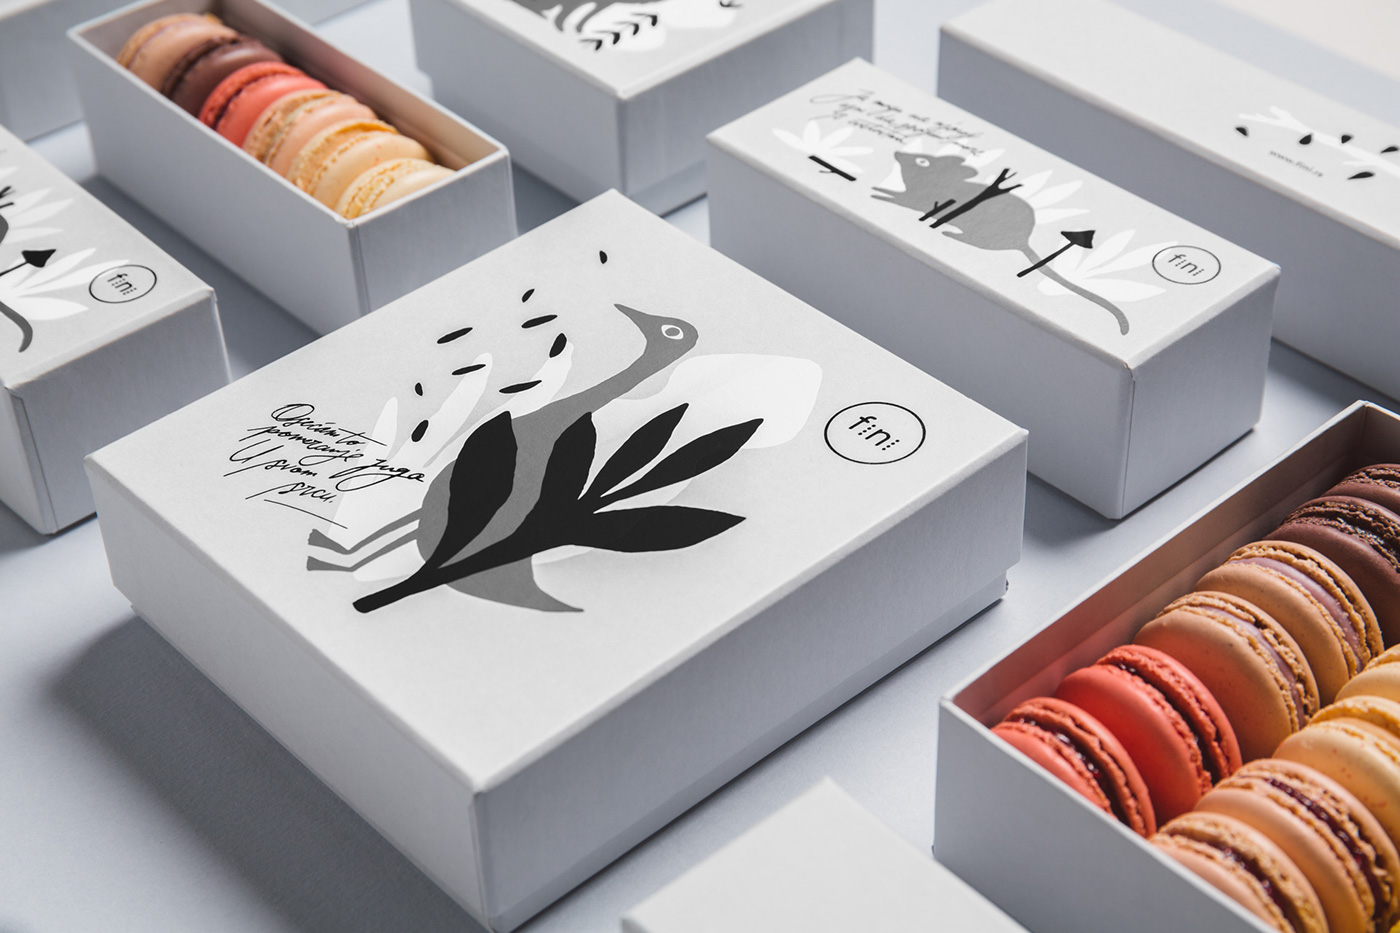 Family Serbian Famous Pâtisserie Inspired by the French Traditions / World Brand & Packaging Design Society